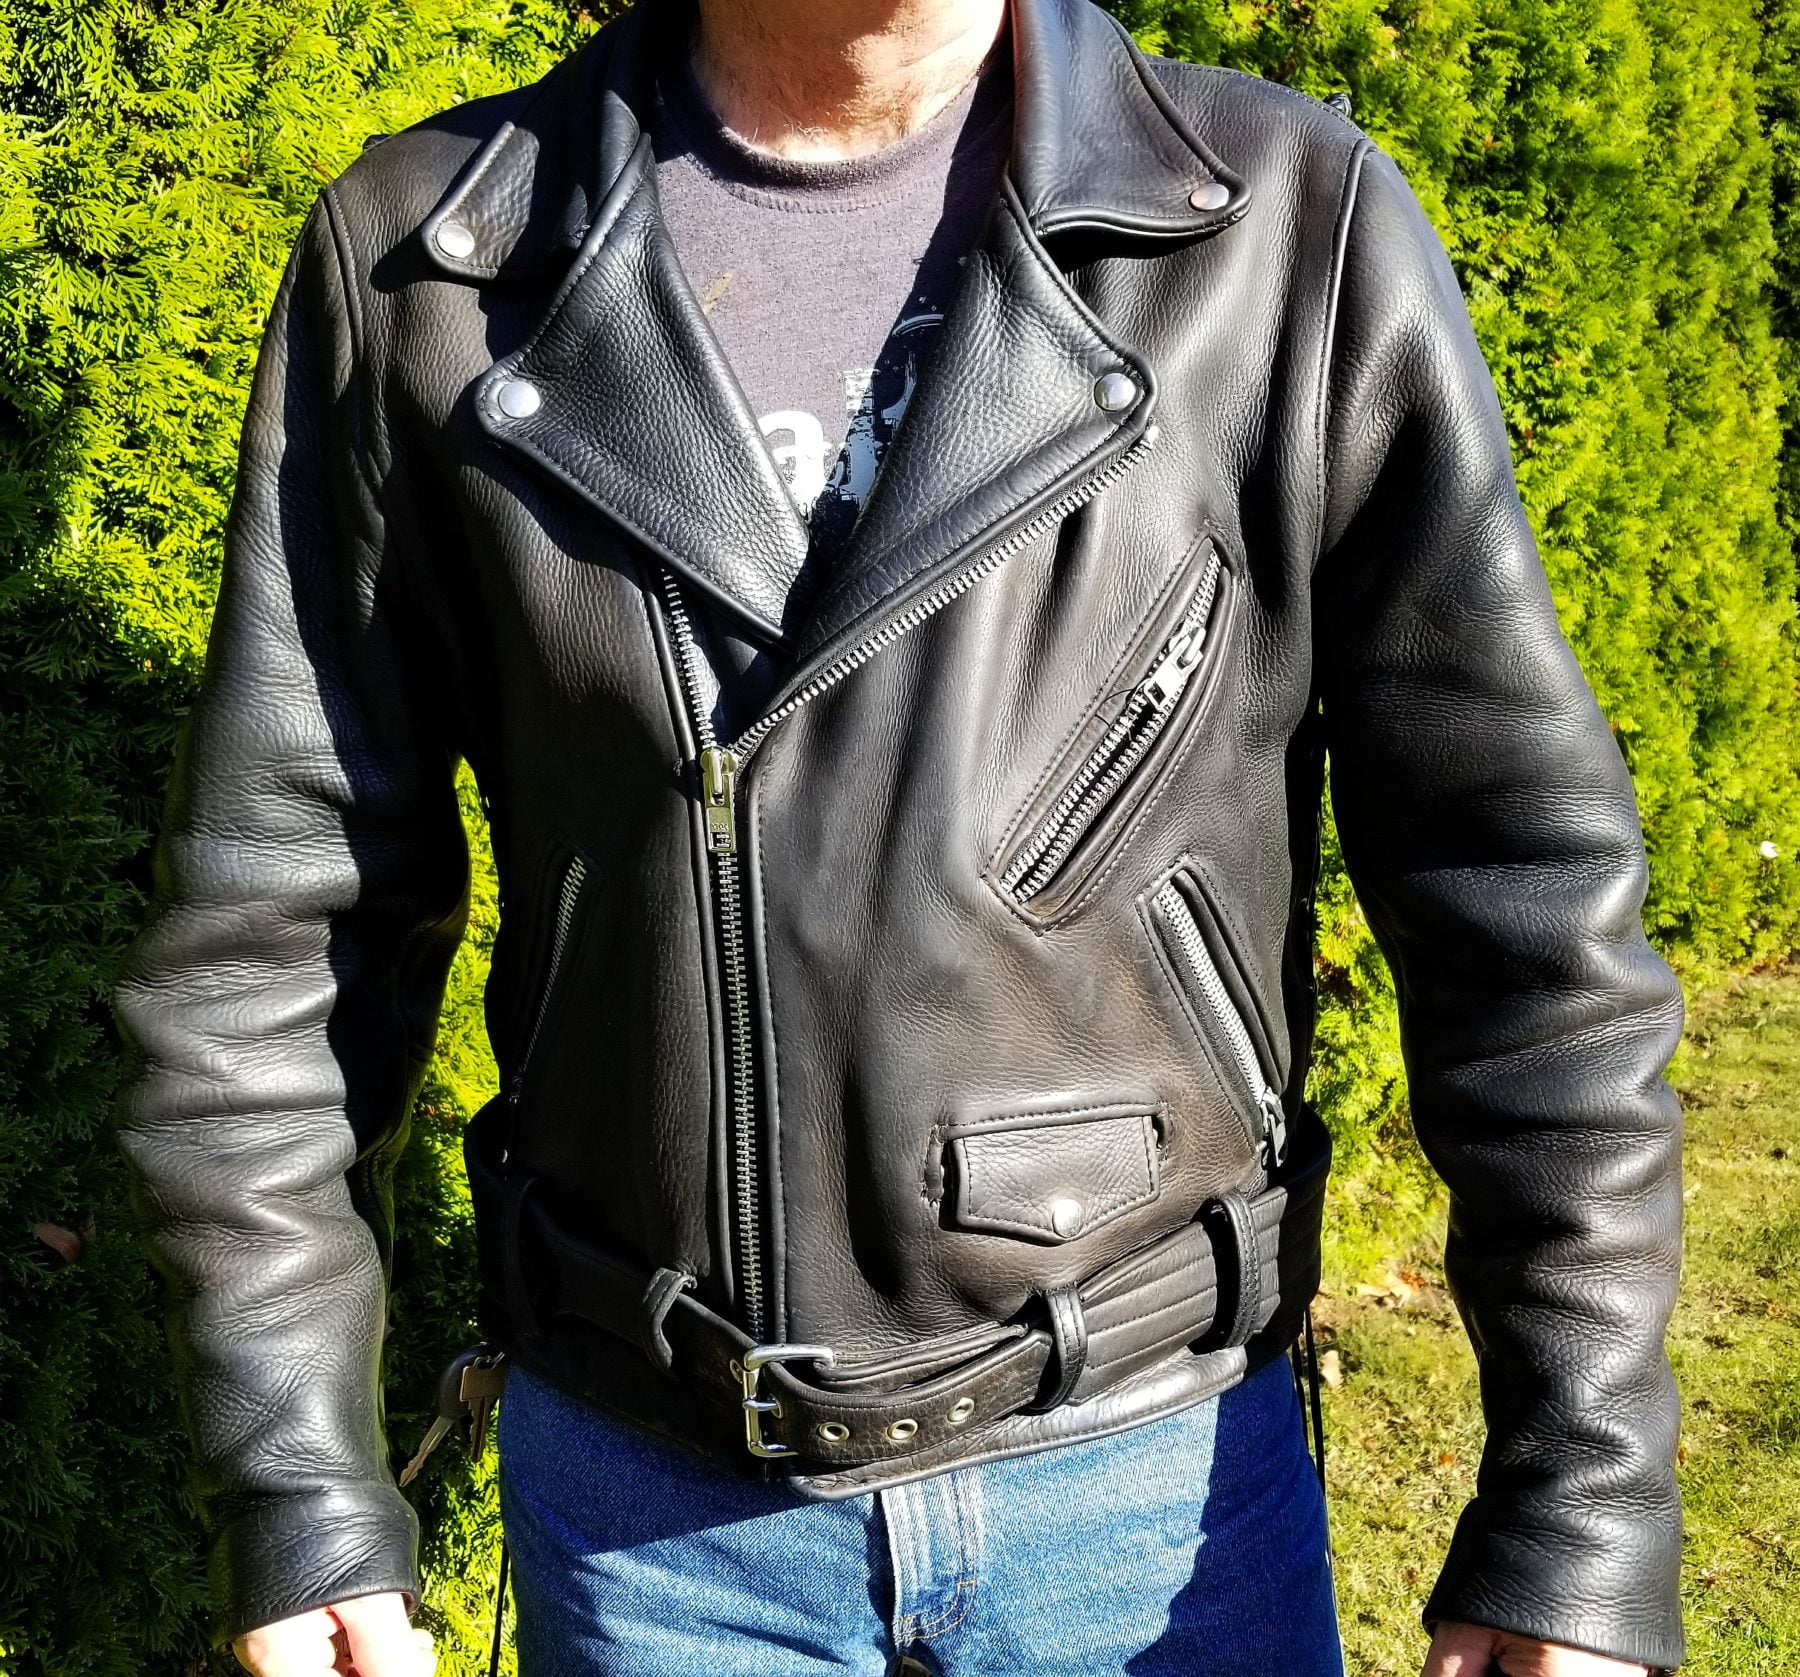 The Heavy Leather Jacket